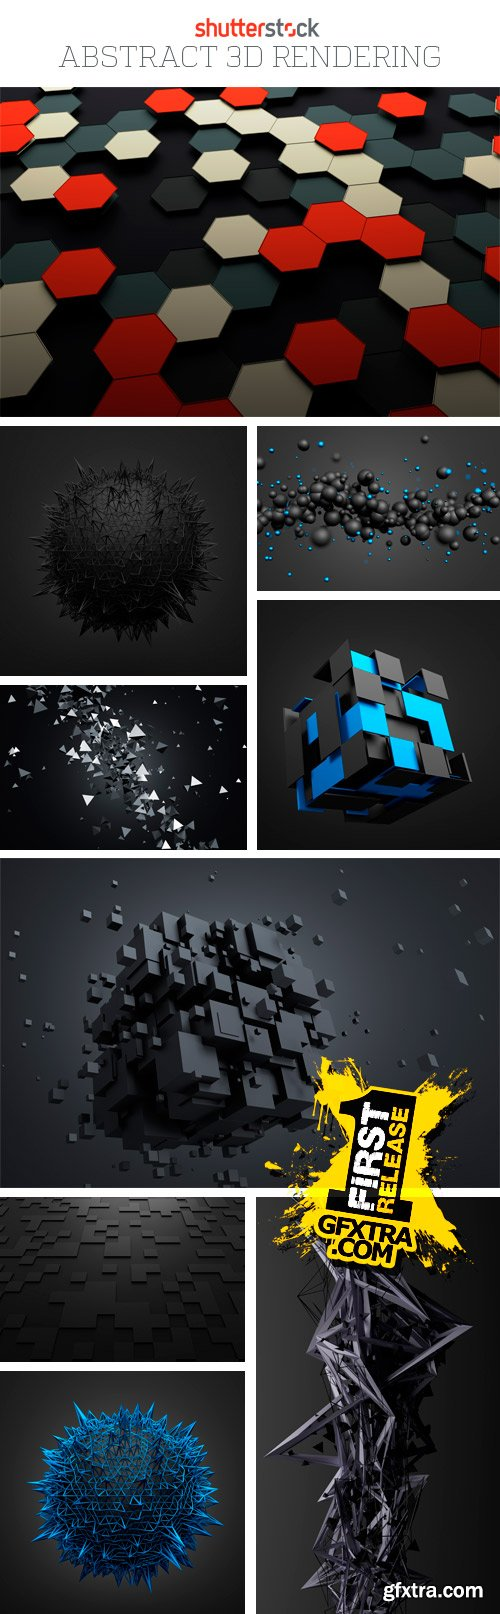 Amazing SS - Abstract 3D Rendering, 25xJPGs